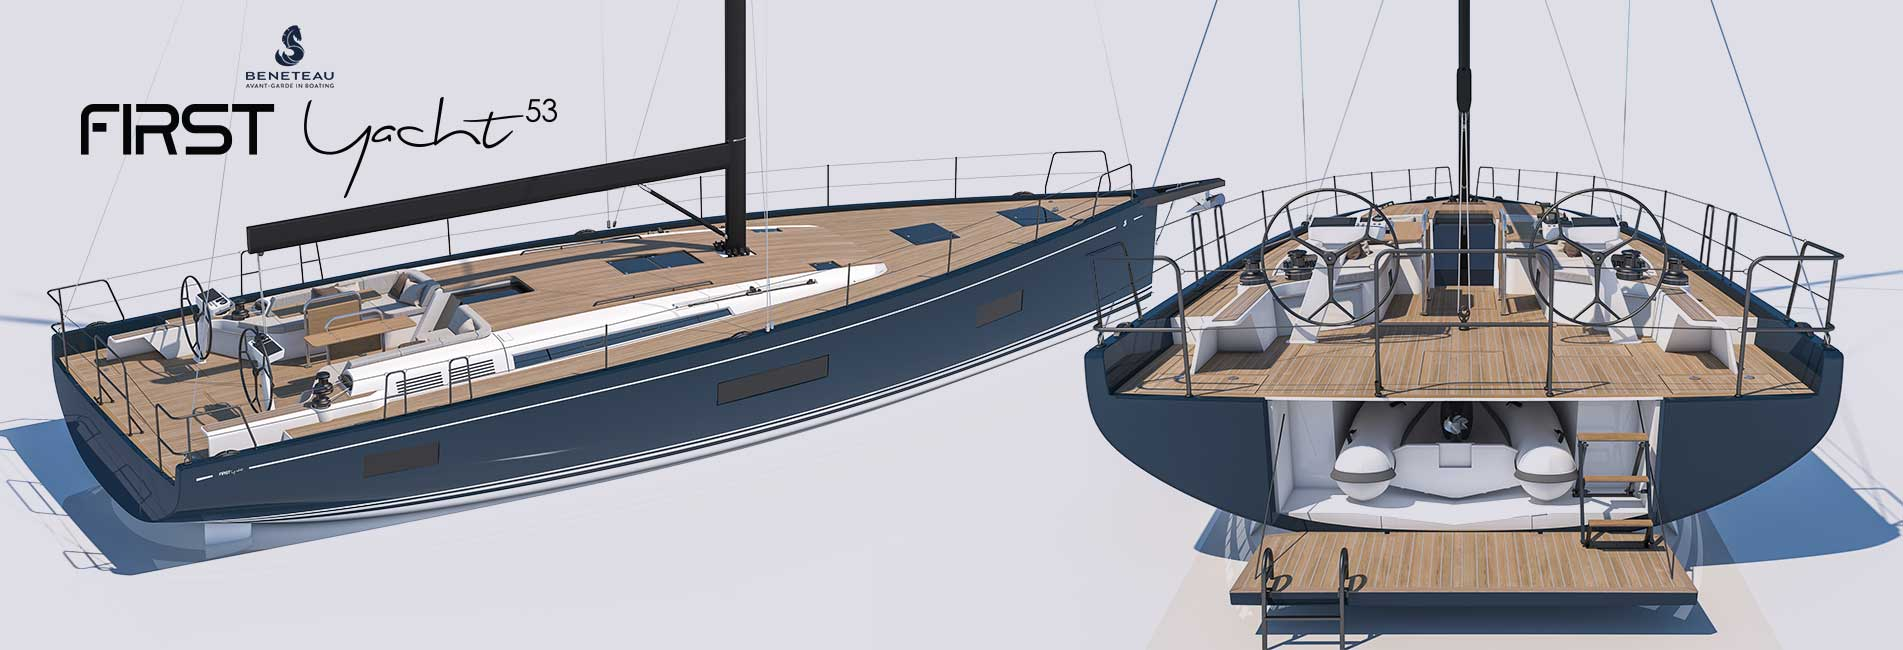 New Beneteau First Yacht 53